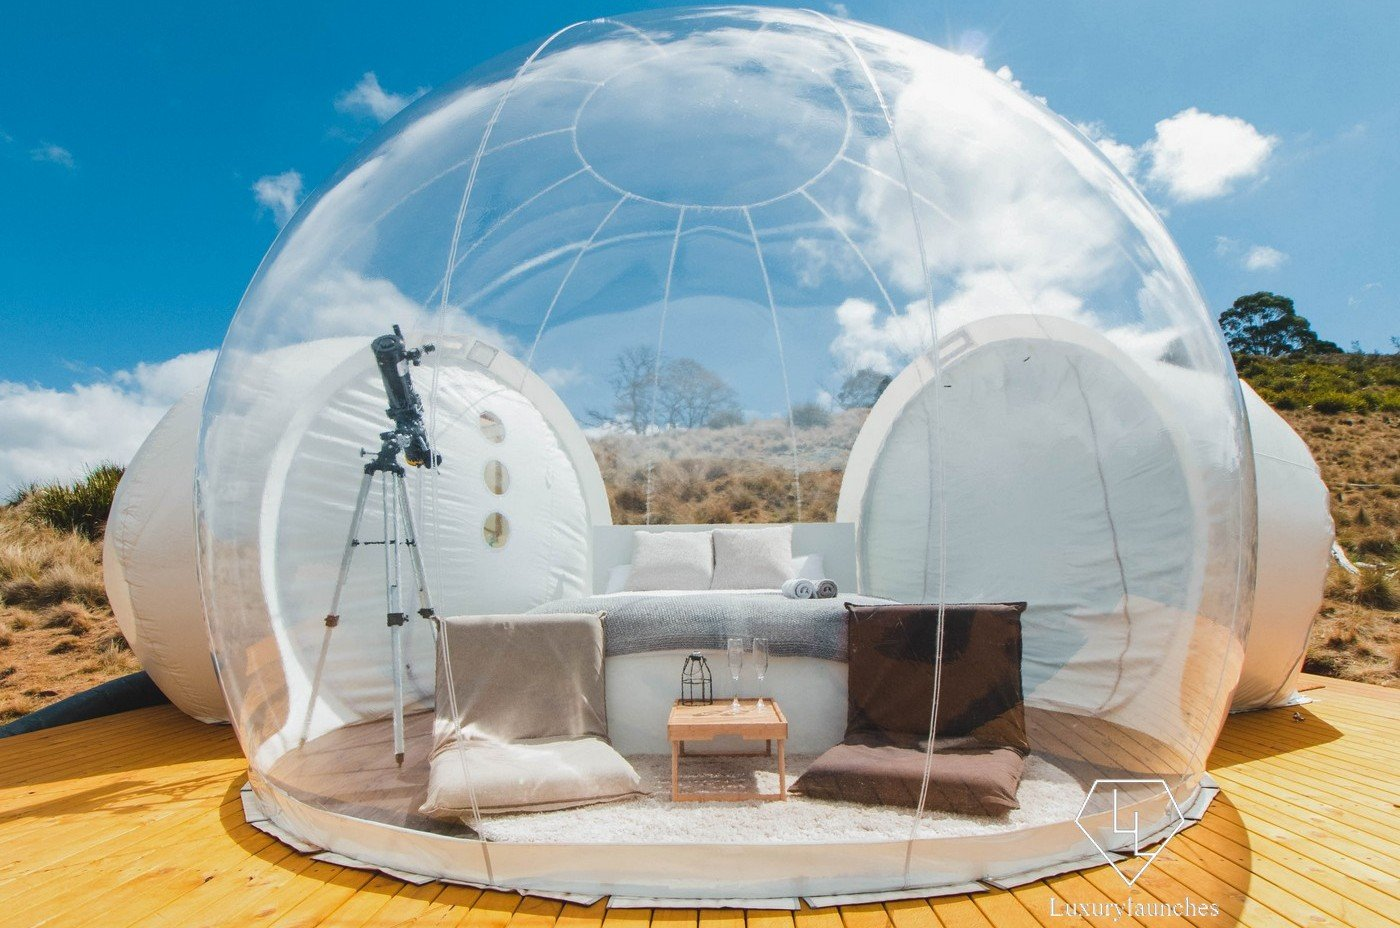 Living In A Bubble Gets A Whole New Meaning With This